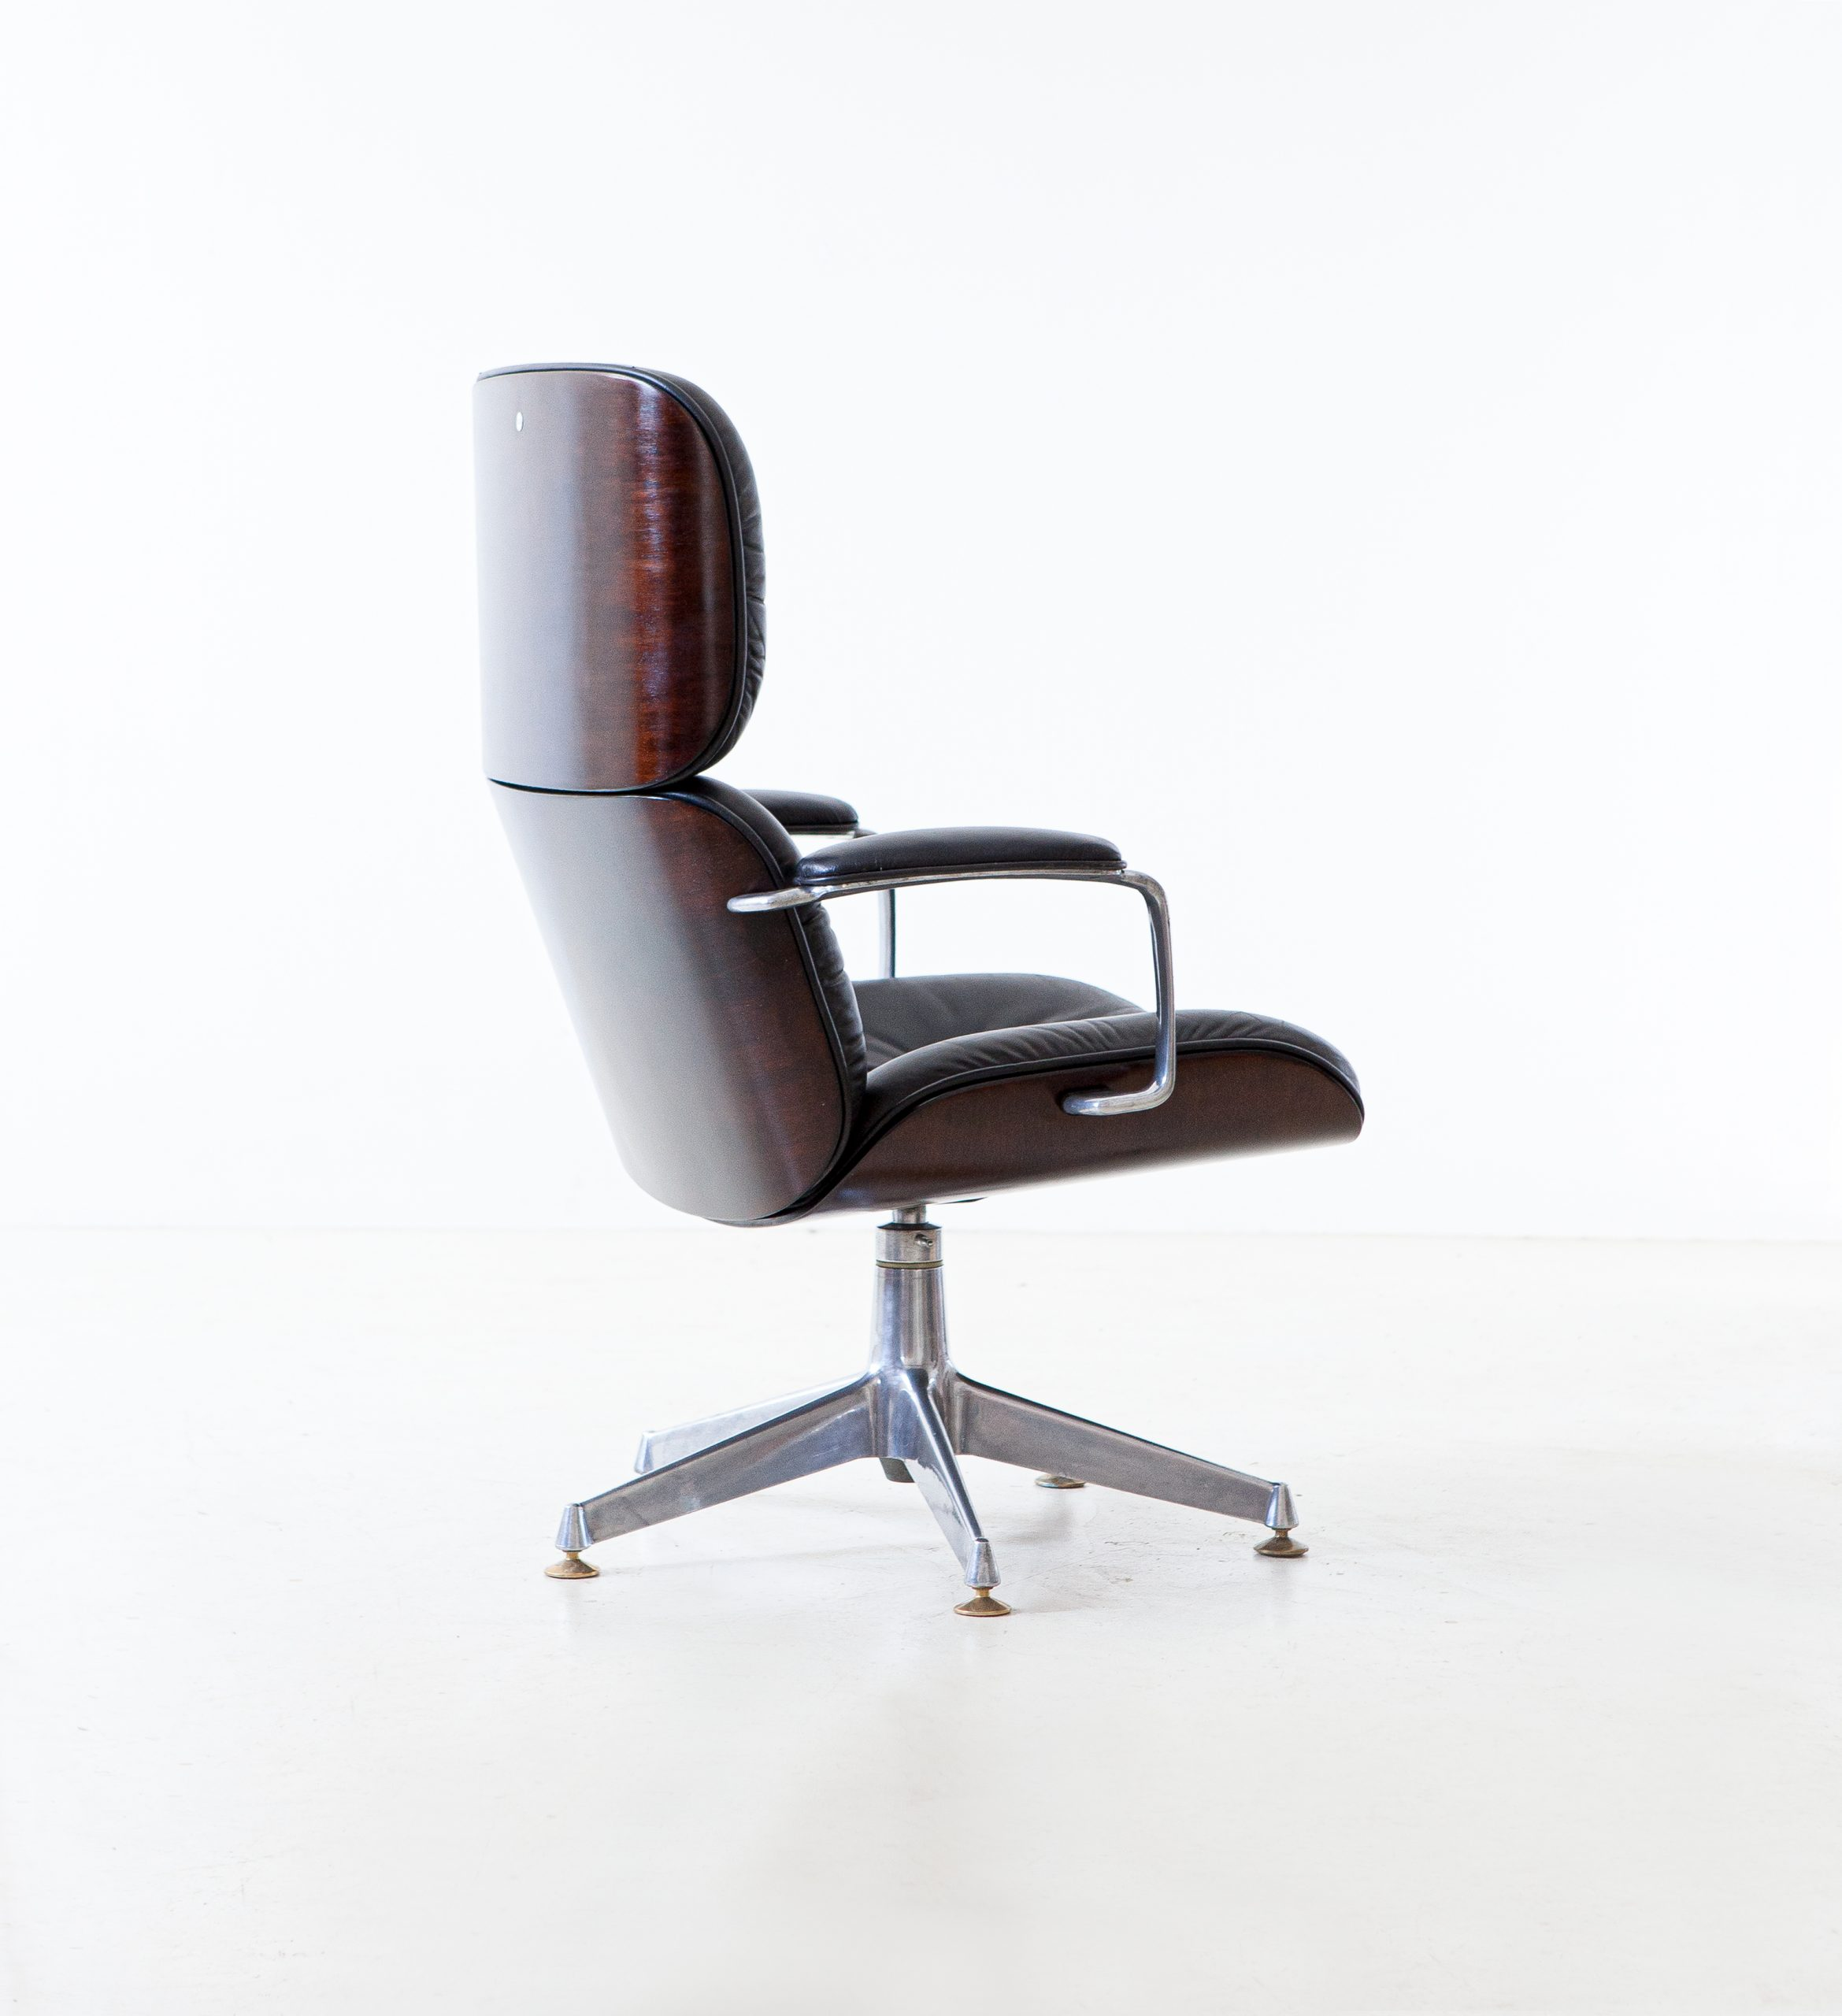 1950s-executive-desk-chair-by-Ico-Parisi-for-M.i.M.-6-SE332